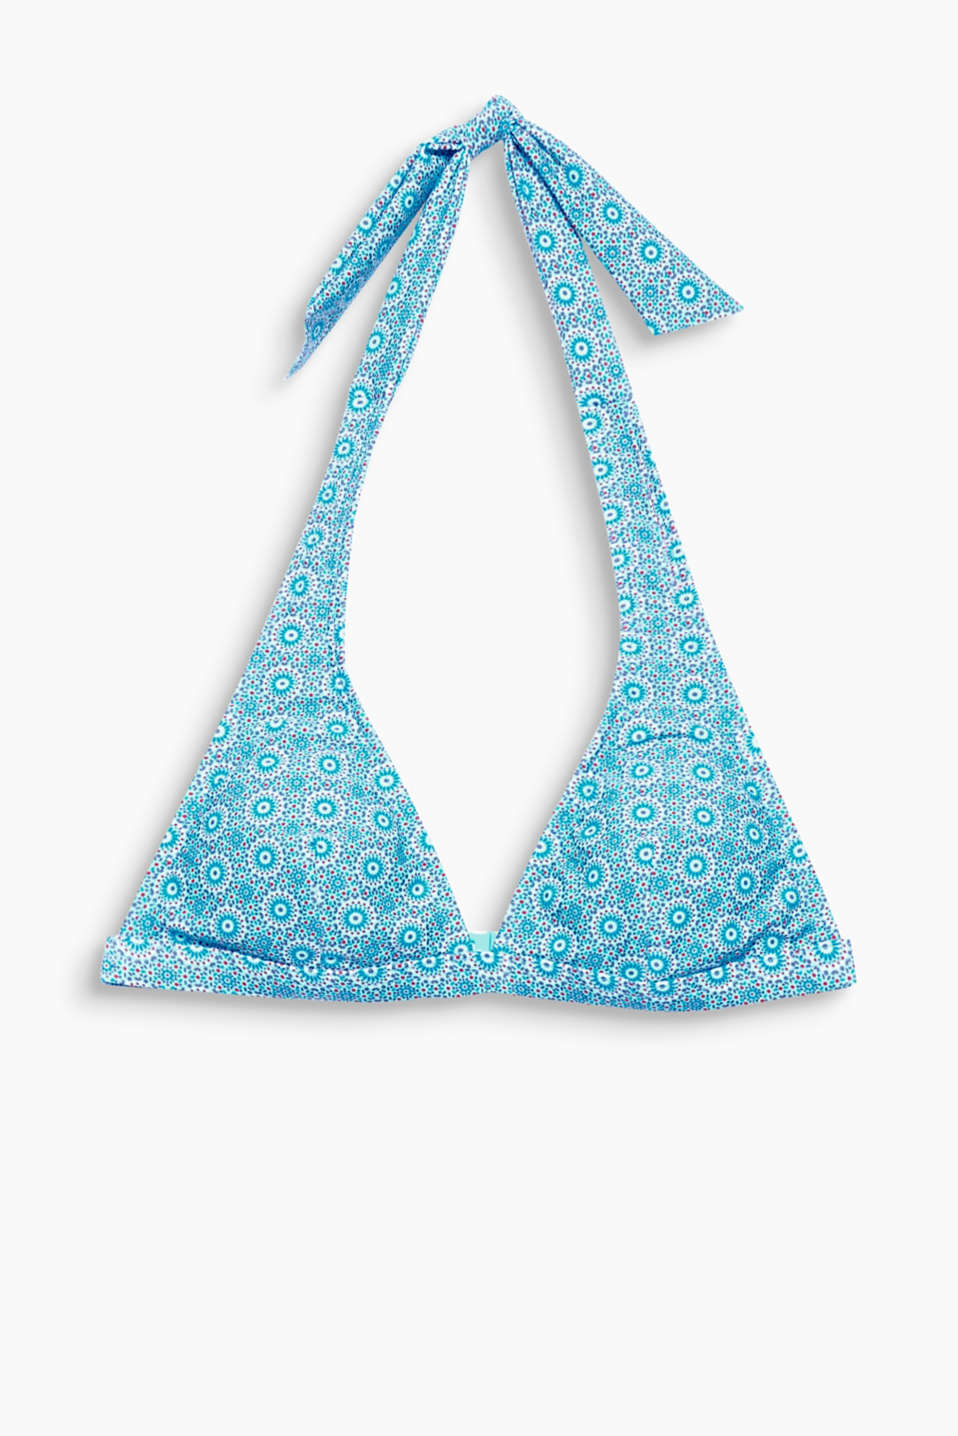 AUGUSTINE collection - a mini print meets folk style on this decoratively patterned, padded halterneck bikini top